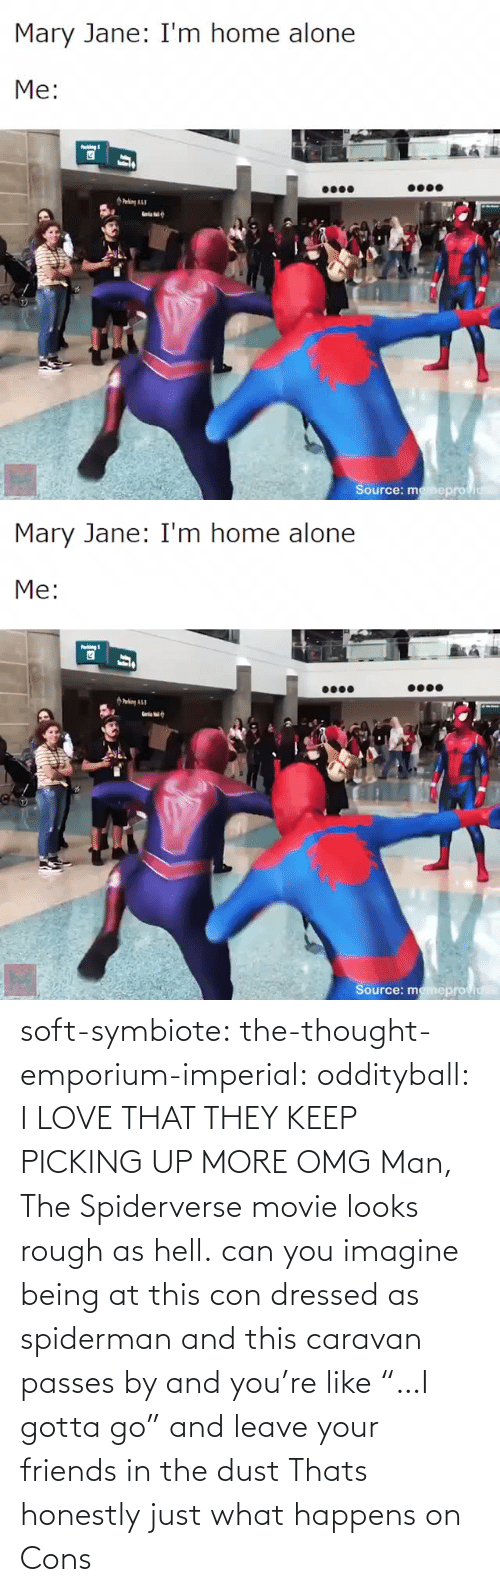 "Movie: soft-symbiote: the-thought-emporium-imperial:  oddityball: I LOVE THAT THEY KEEP PICKING UP MORE OMG Man, The Spiderverse movie looks rough as hell.   can you imagine being at this con dressed as spiderman and this caravan passes by and you're like ""…I gotta go"" and leave your friends in the dust     Thats honestly just what happens on Cons"